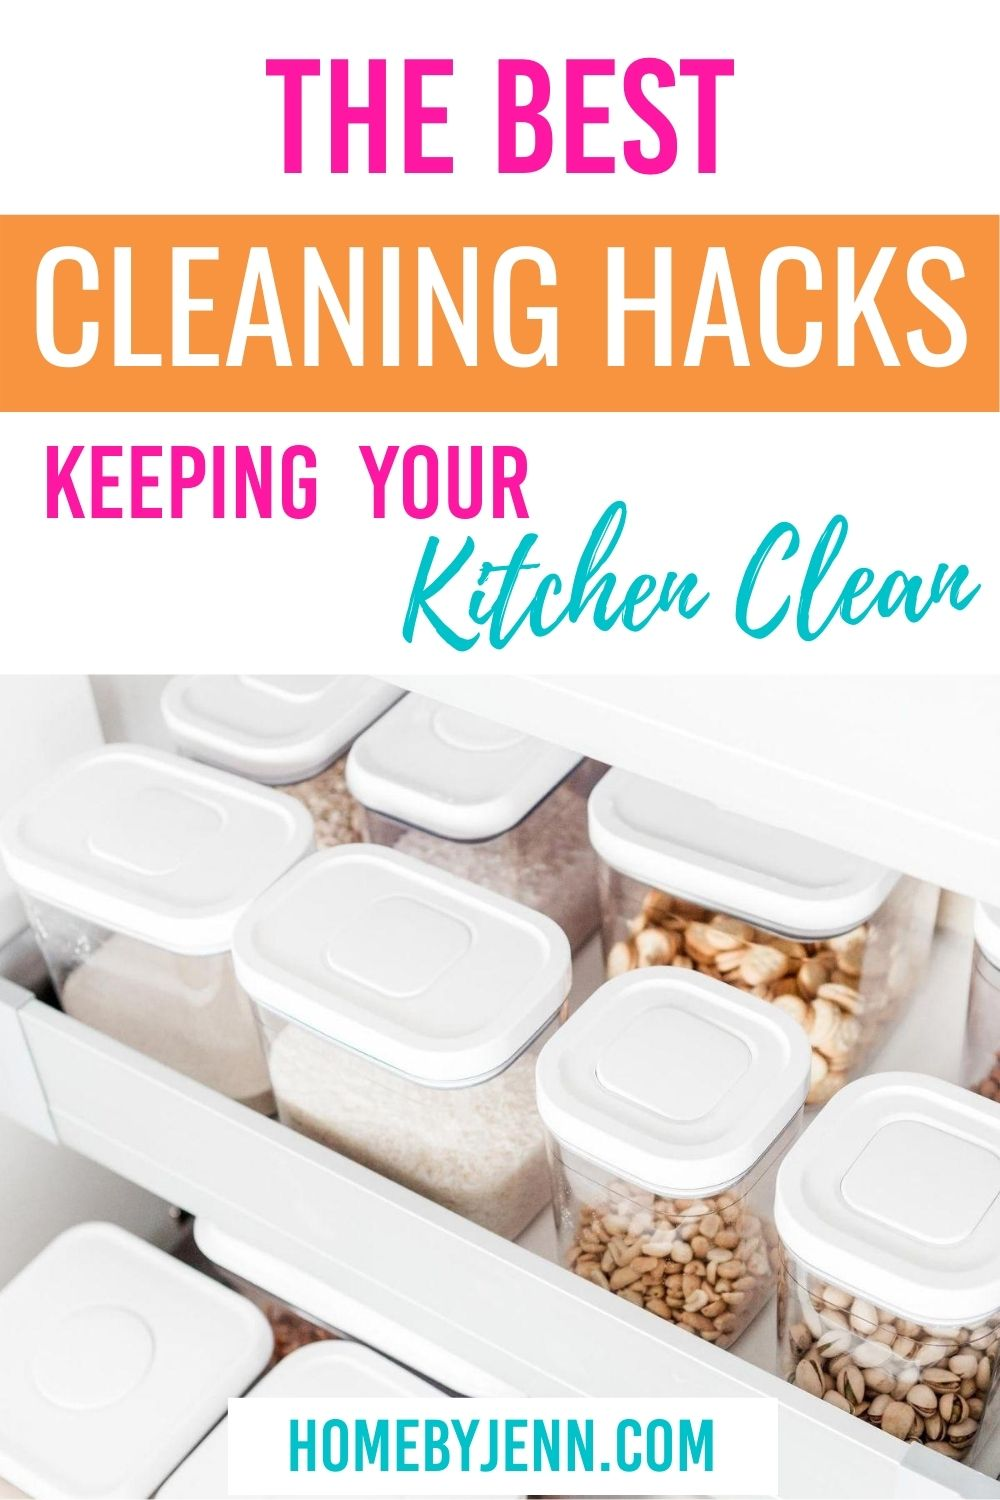 Here's the best cleaning hacks to keep your kitchen clean. These cleaning tips are simple to use. #cleaning #cleaningtips #cleaninghacks #cleaningtipsandtricks #cleankitchen via @homebyjenn